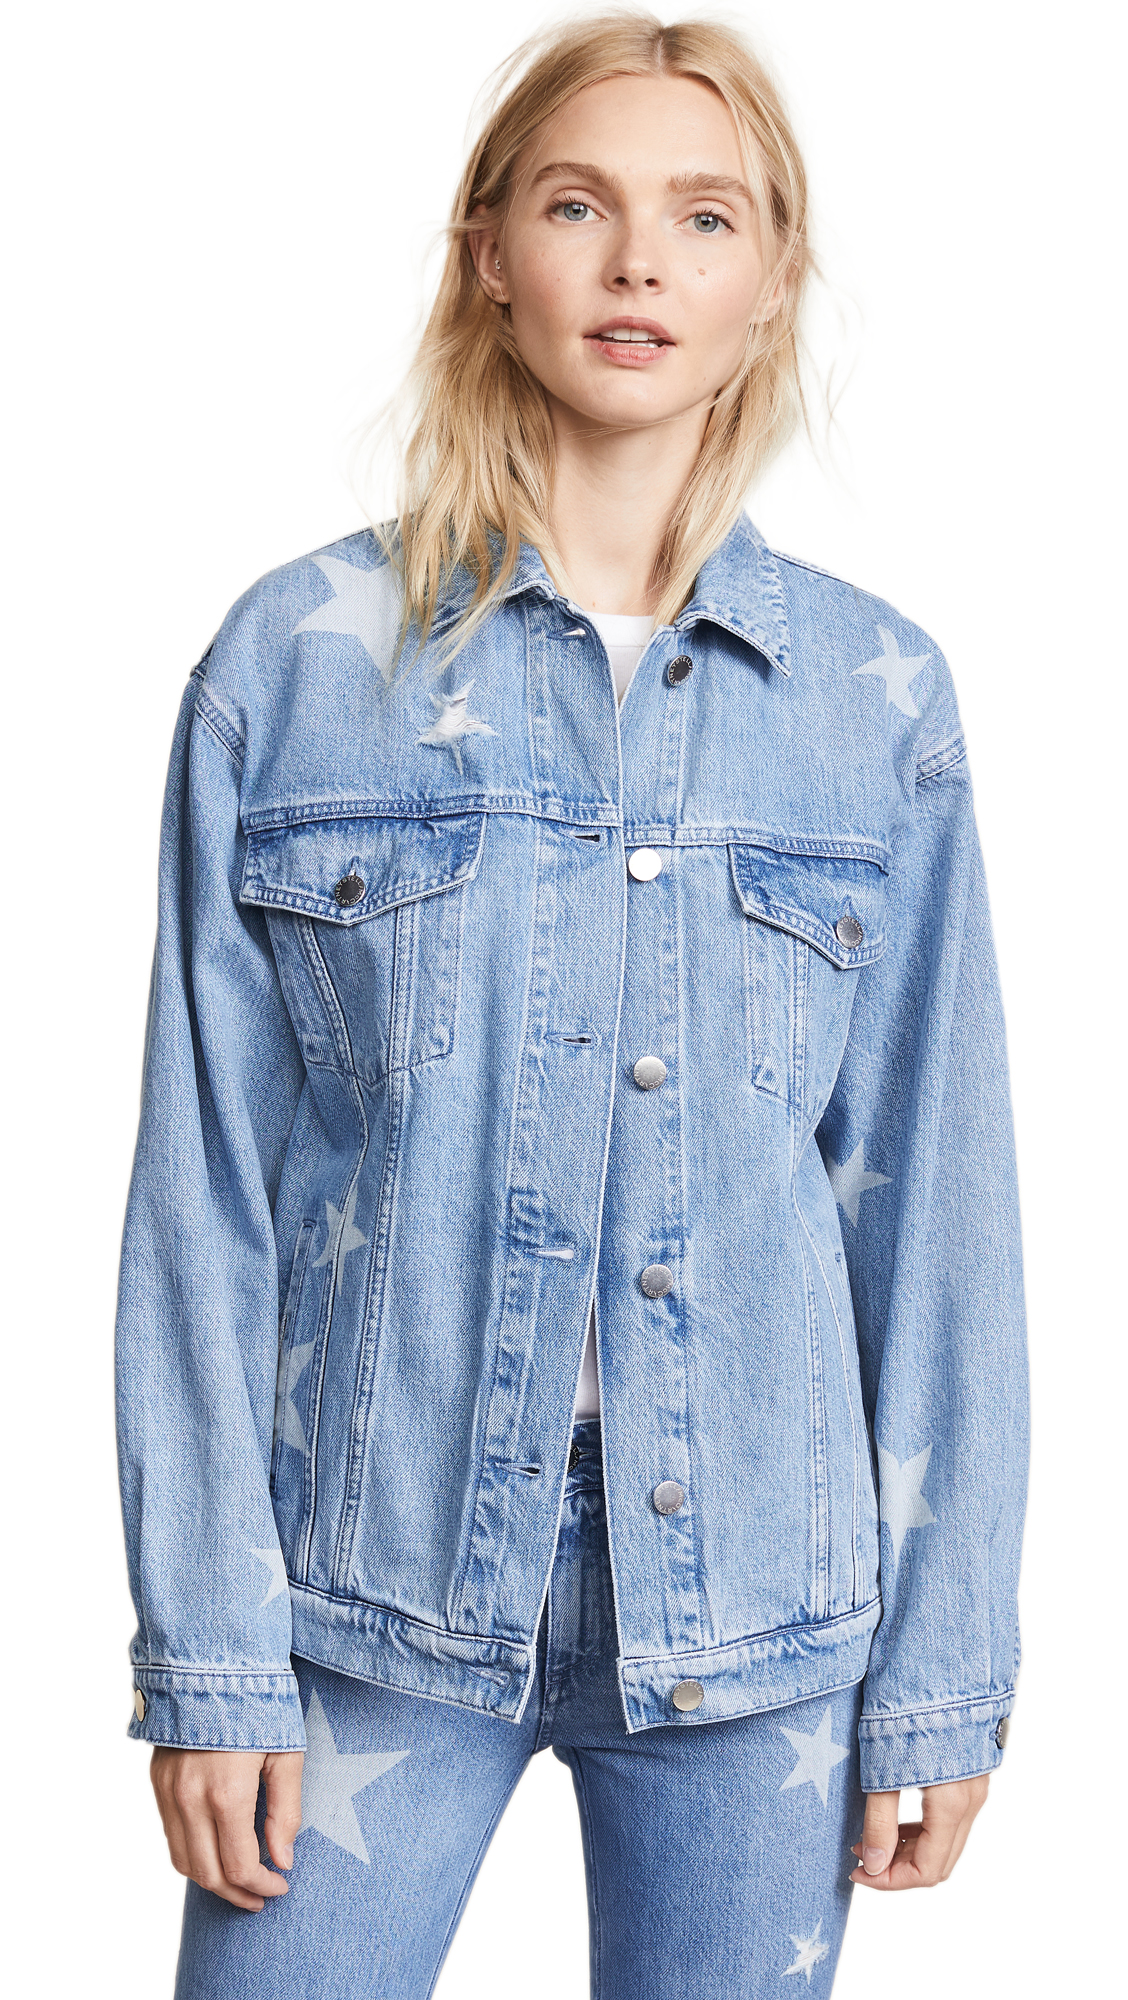 Stella McCartney Denim Stars Jacket In Light Blue